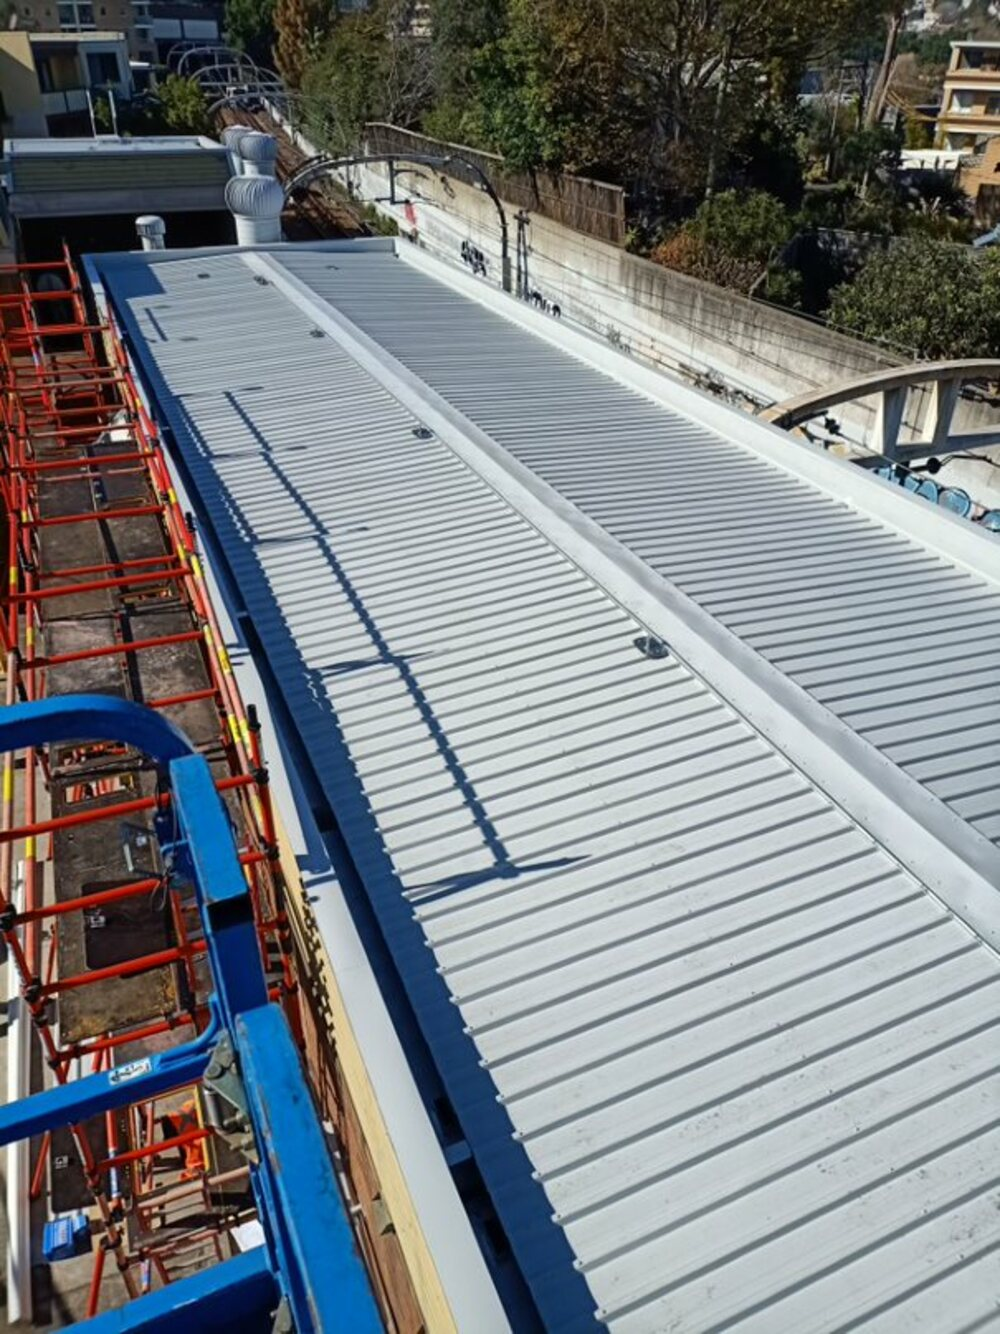 Roof and gutter Works, Sydney Trains, Edgecliff